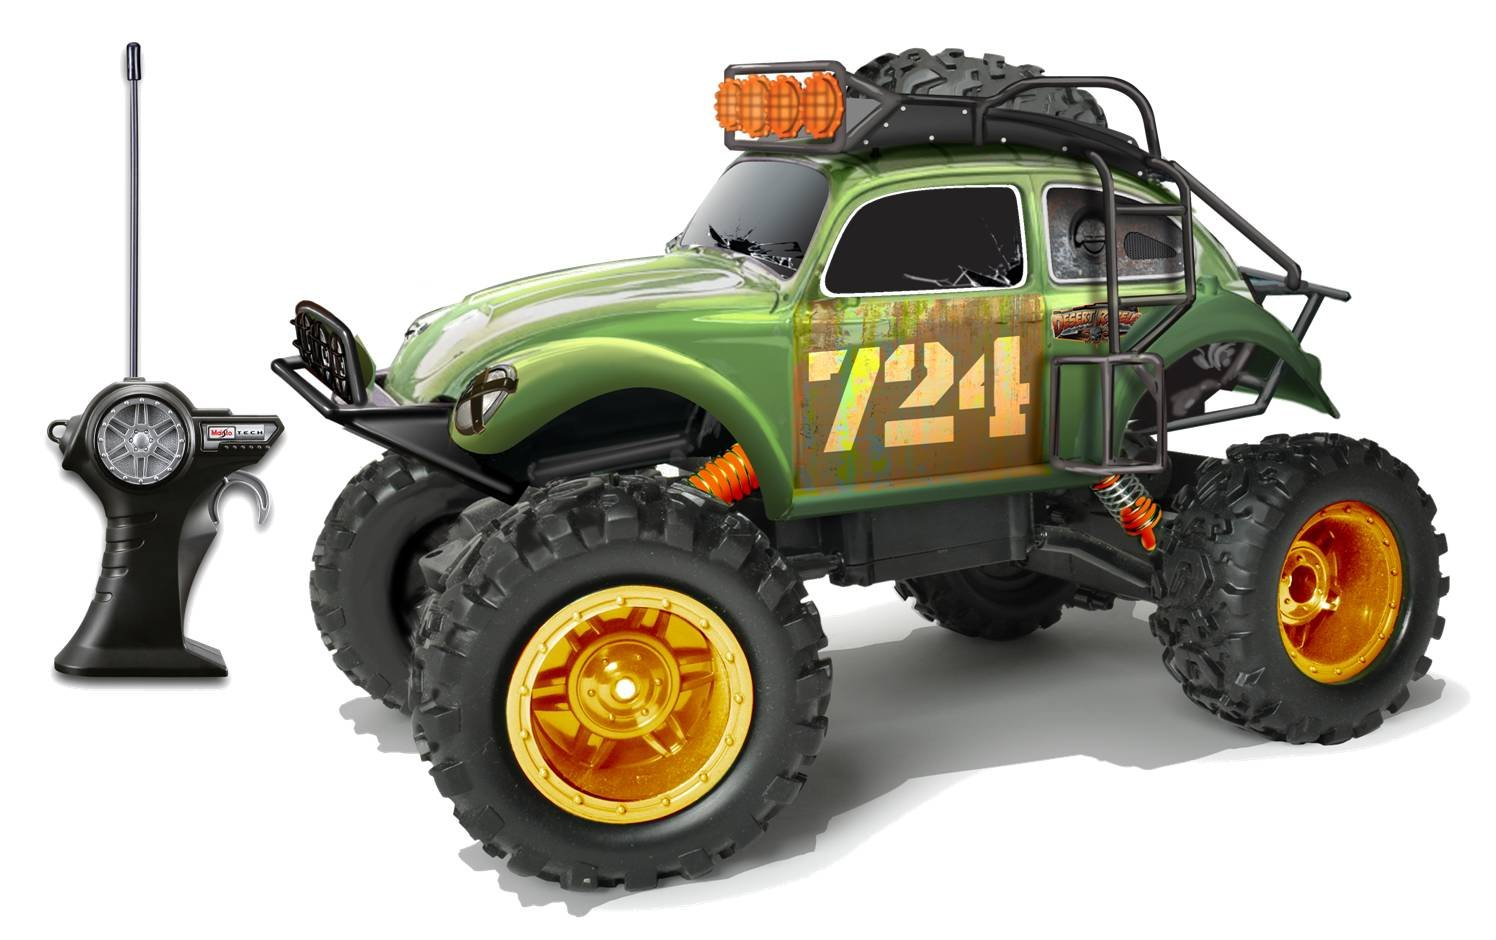 Best Rated In Toy Rc Vehicles Helpful Customer Reviews Dump Truck Off Road Music Remote Control 14 Cm Maisto Desert Rebel Volkswagen Beetle Radio Vehicle 110 Scale Product Image